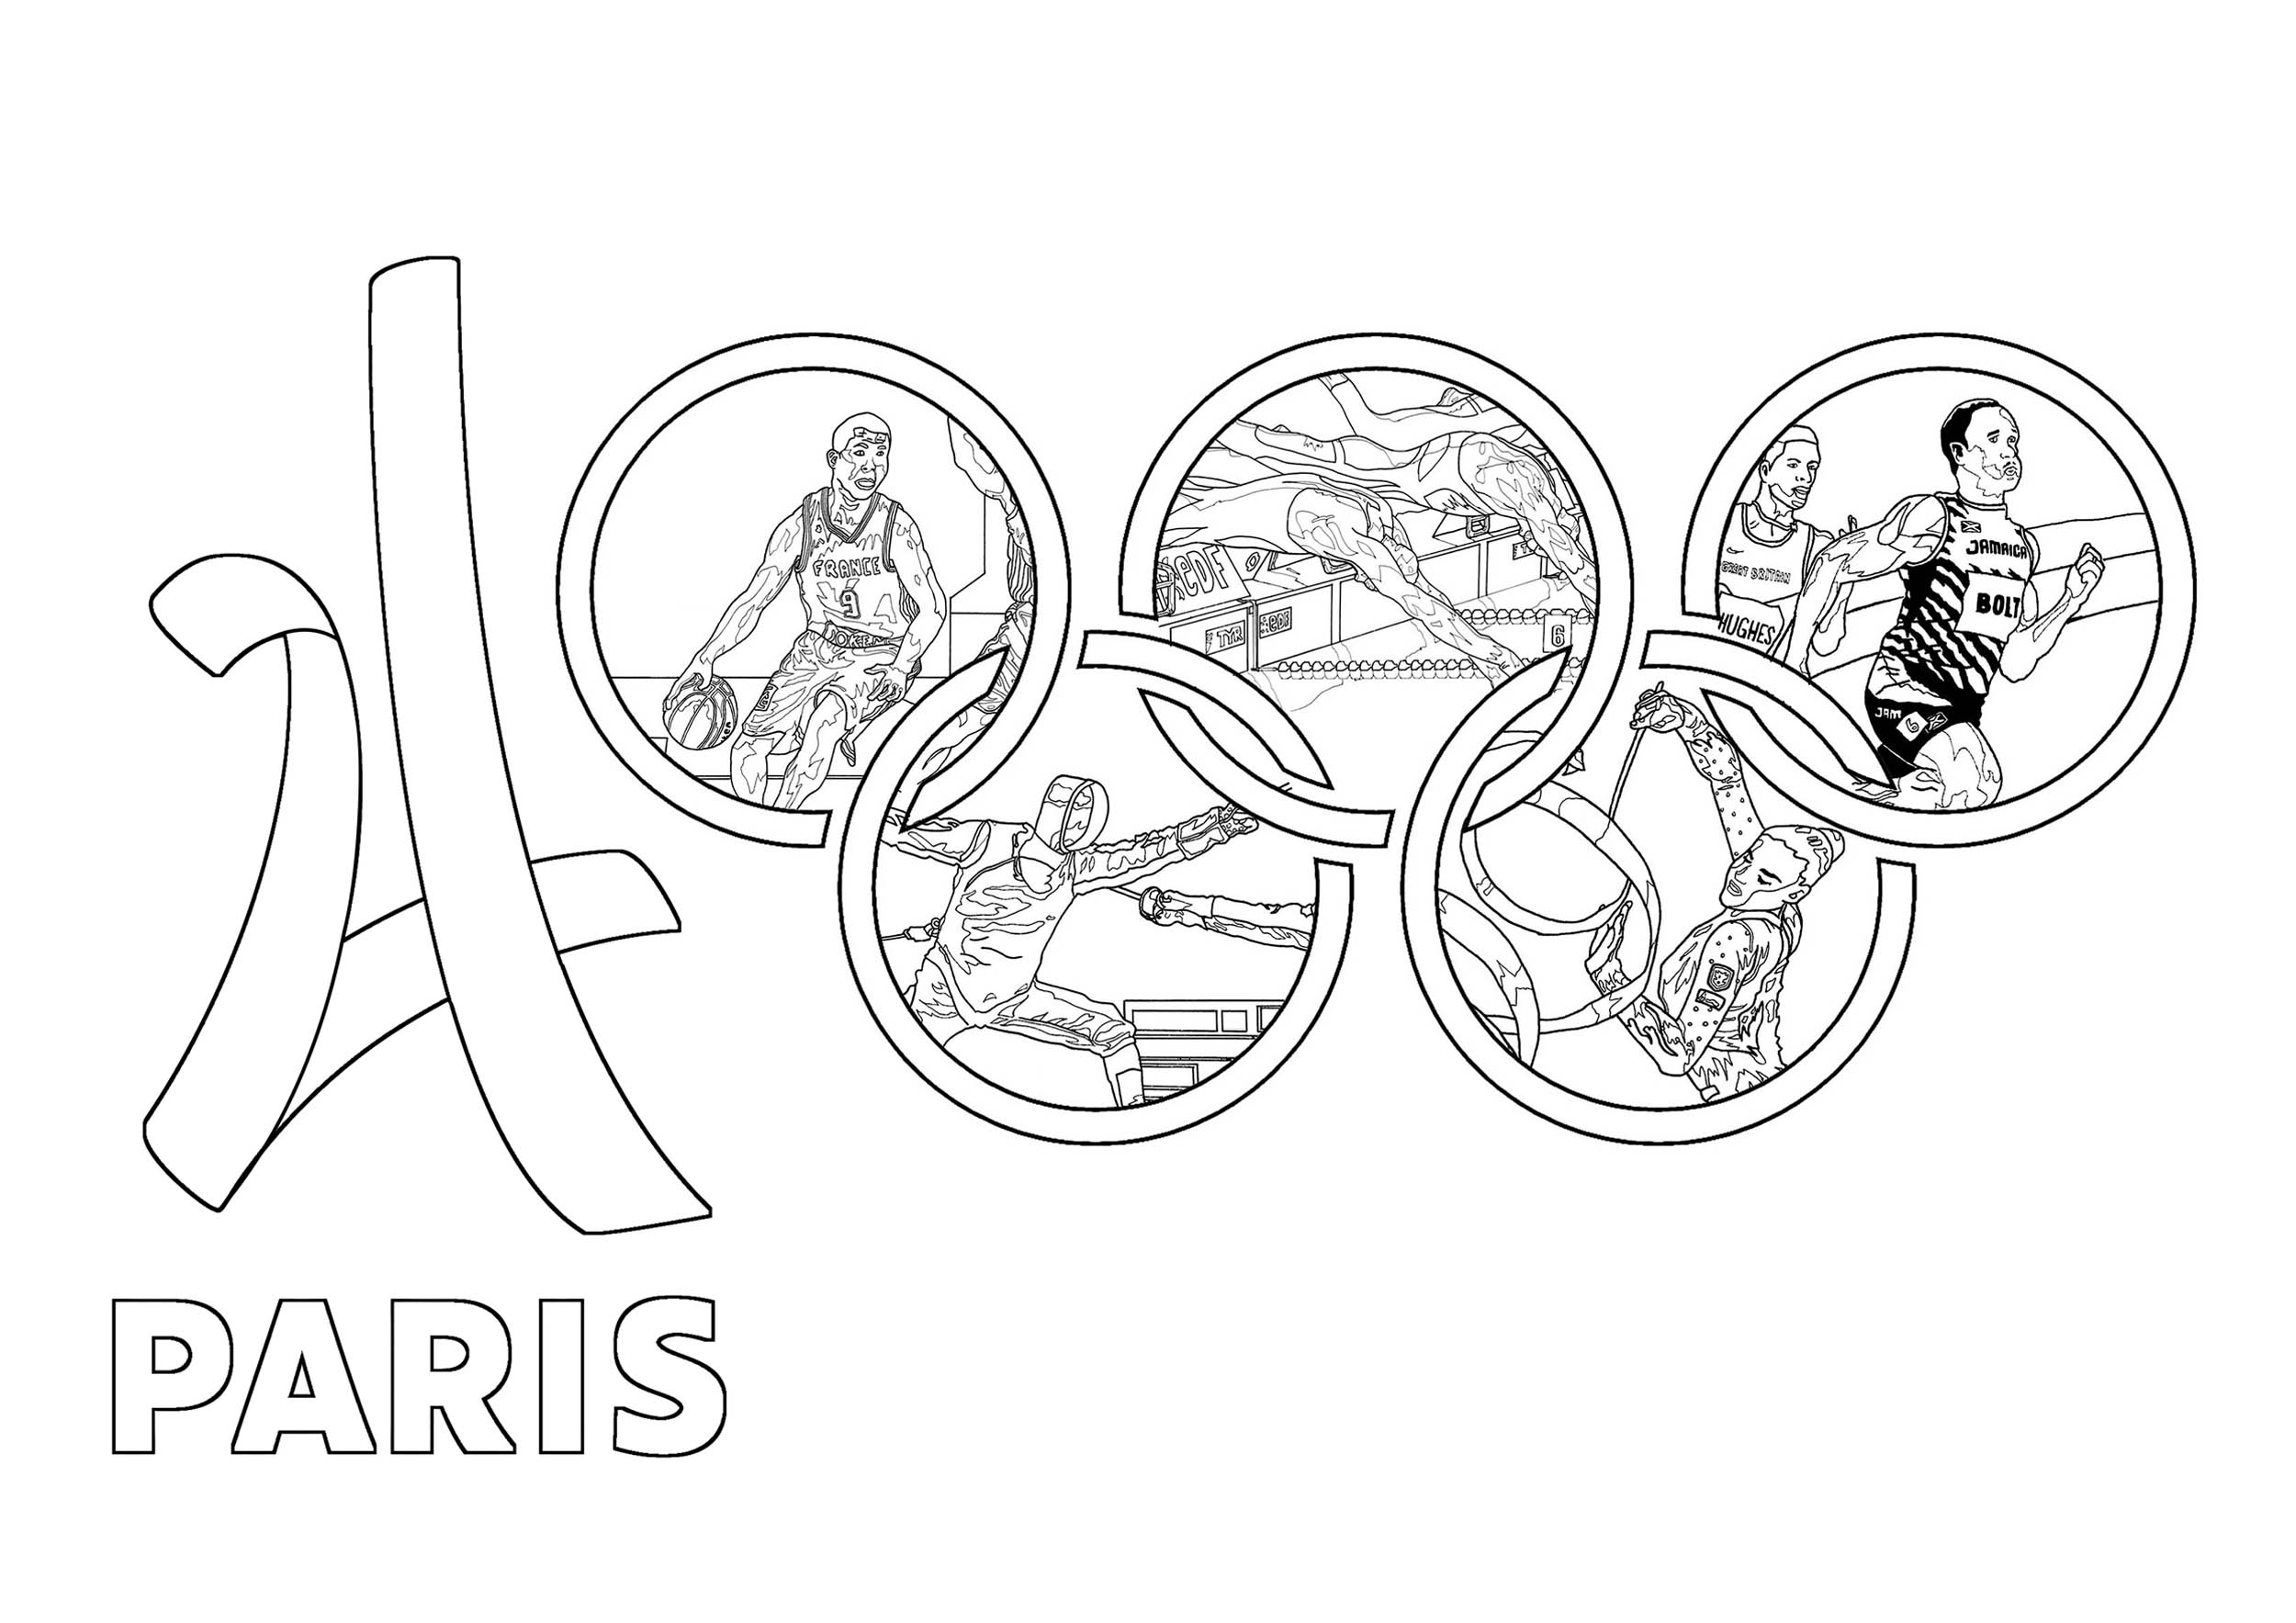 Olympic games paris 2024 - Olympic (& sport) Adult Coloring Pages